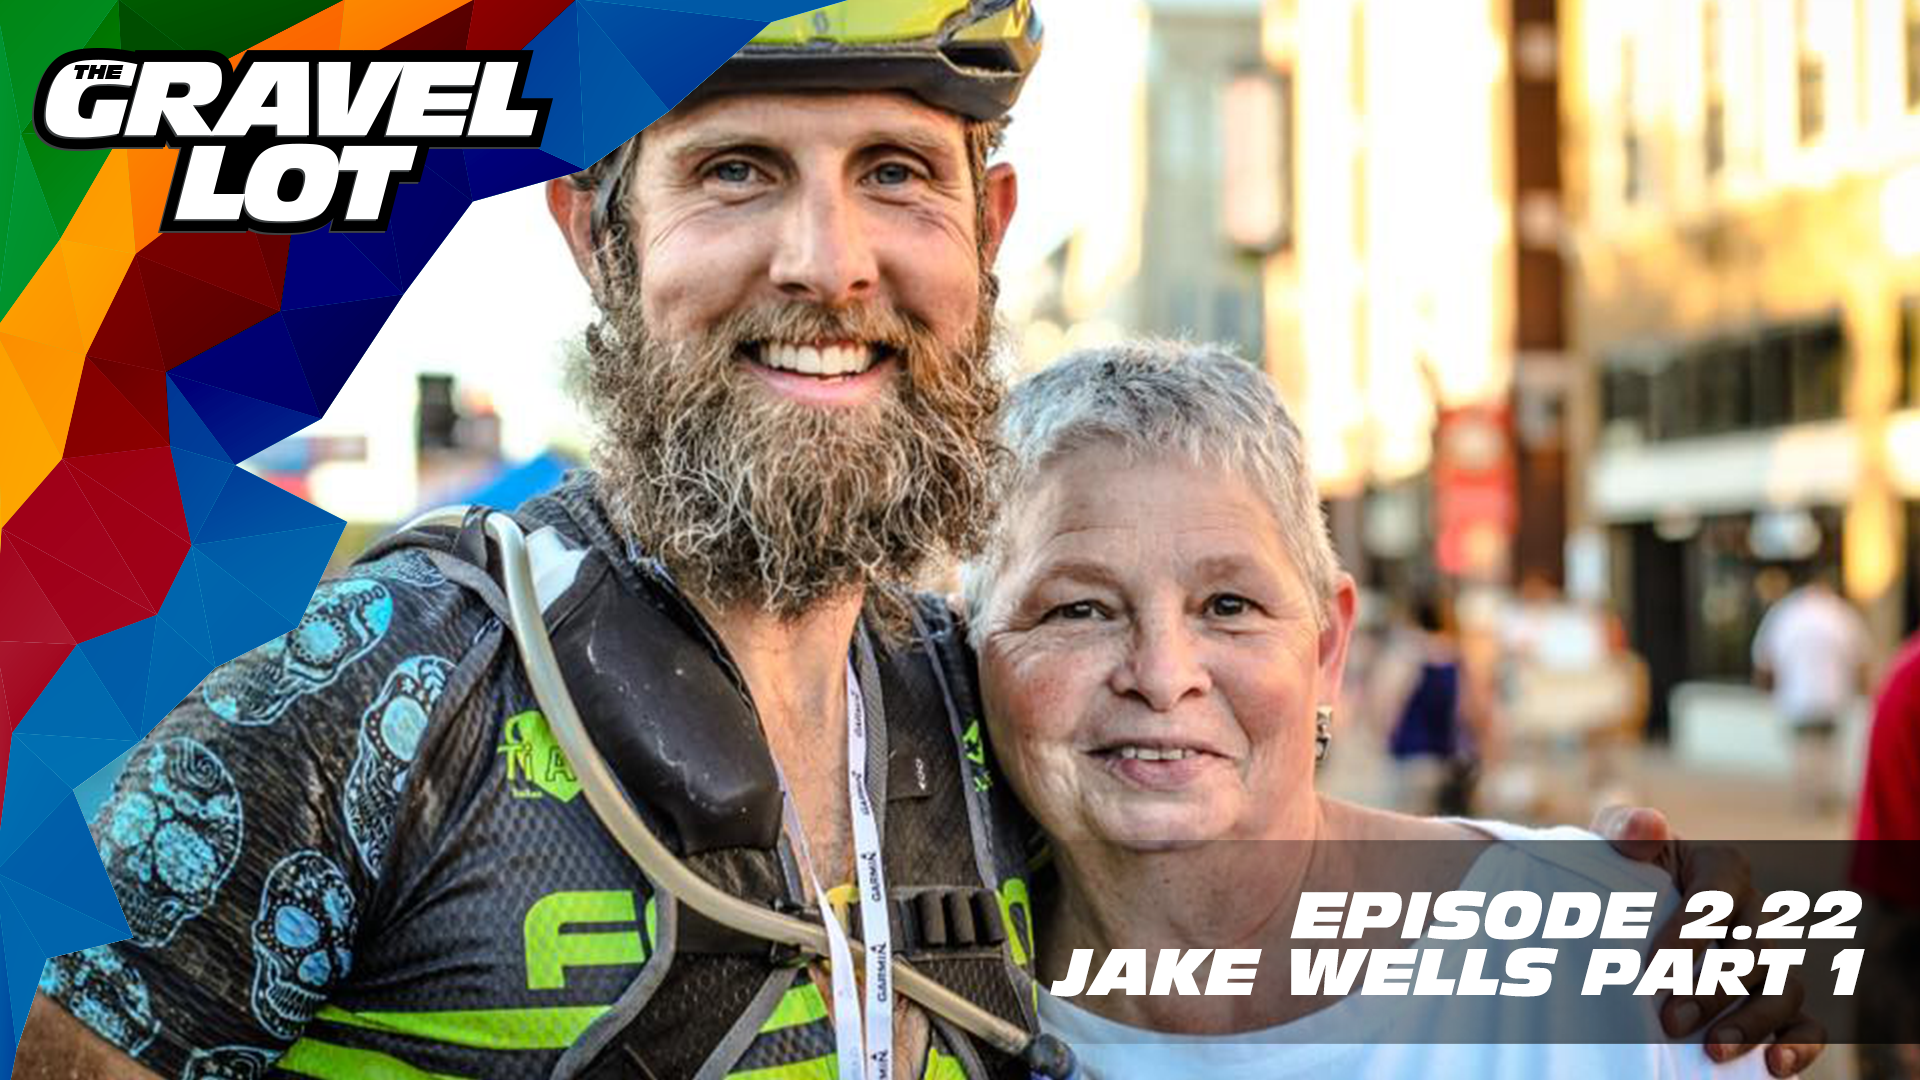 "Episode 74: In a Gravel Lot first: Jake Wells joins us for a two-part podcast. In this first installment, we delve into his professional racing career to break down the psychological and emotional toll behind the grind required to perform at an elite level.   Exclusive Preview of Unknown Country: One man's inspirational journey to the Dirty Kanza XL    Visit The Gravel Lot website for our latest podcast, Real Talk videos, Bonus Content, shop, social media, and everything in between.    Noxgear: Use code ""PEBBLES"" for 35% off any item.    Handup Gloves: Use code ""PEBBLE$"" for 20% off EVERYTHING in store.    RoadID: Save $10 off ANY order over $20.    Magas Law Firm:    Be Free Ride Bikes:    Red Kite Ronde Registration   Subscribe to The Gravel Lot on the  Wide Angle Podium Network and become a member TODAY!   Learn more about Undertipper and download their latest album ""Y'all"" at:  http://undertipper.bandcamp.com/"